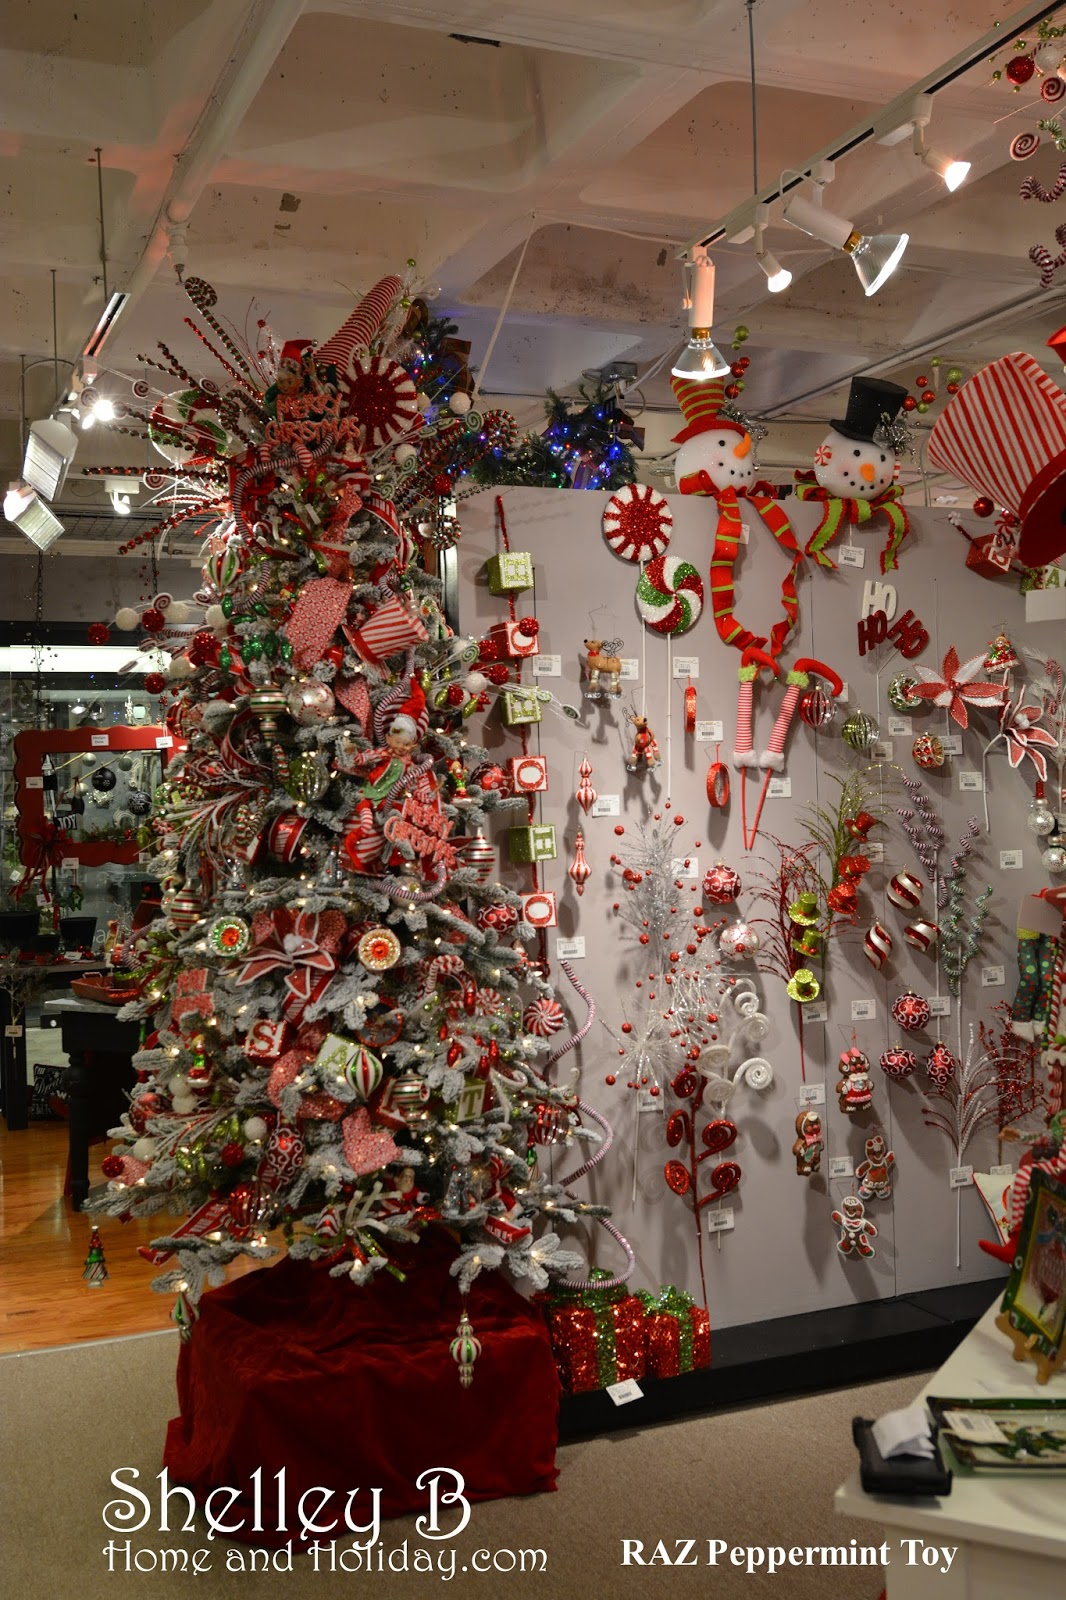 RAZ Christmas at Shelley B Home and Holiday: RAZ Peppermint Toy Christmas Collection   Shelley B ...